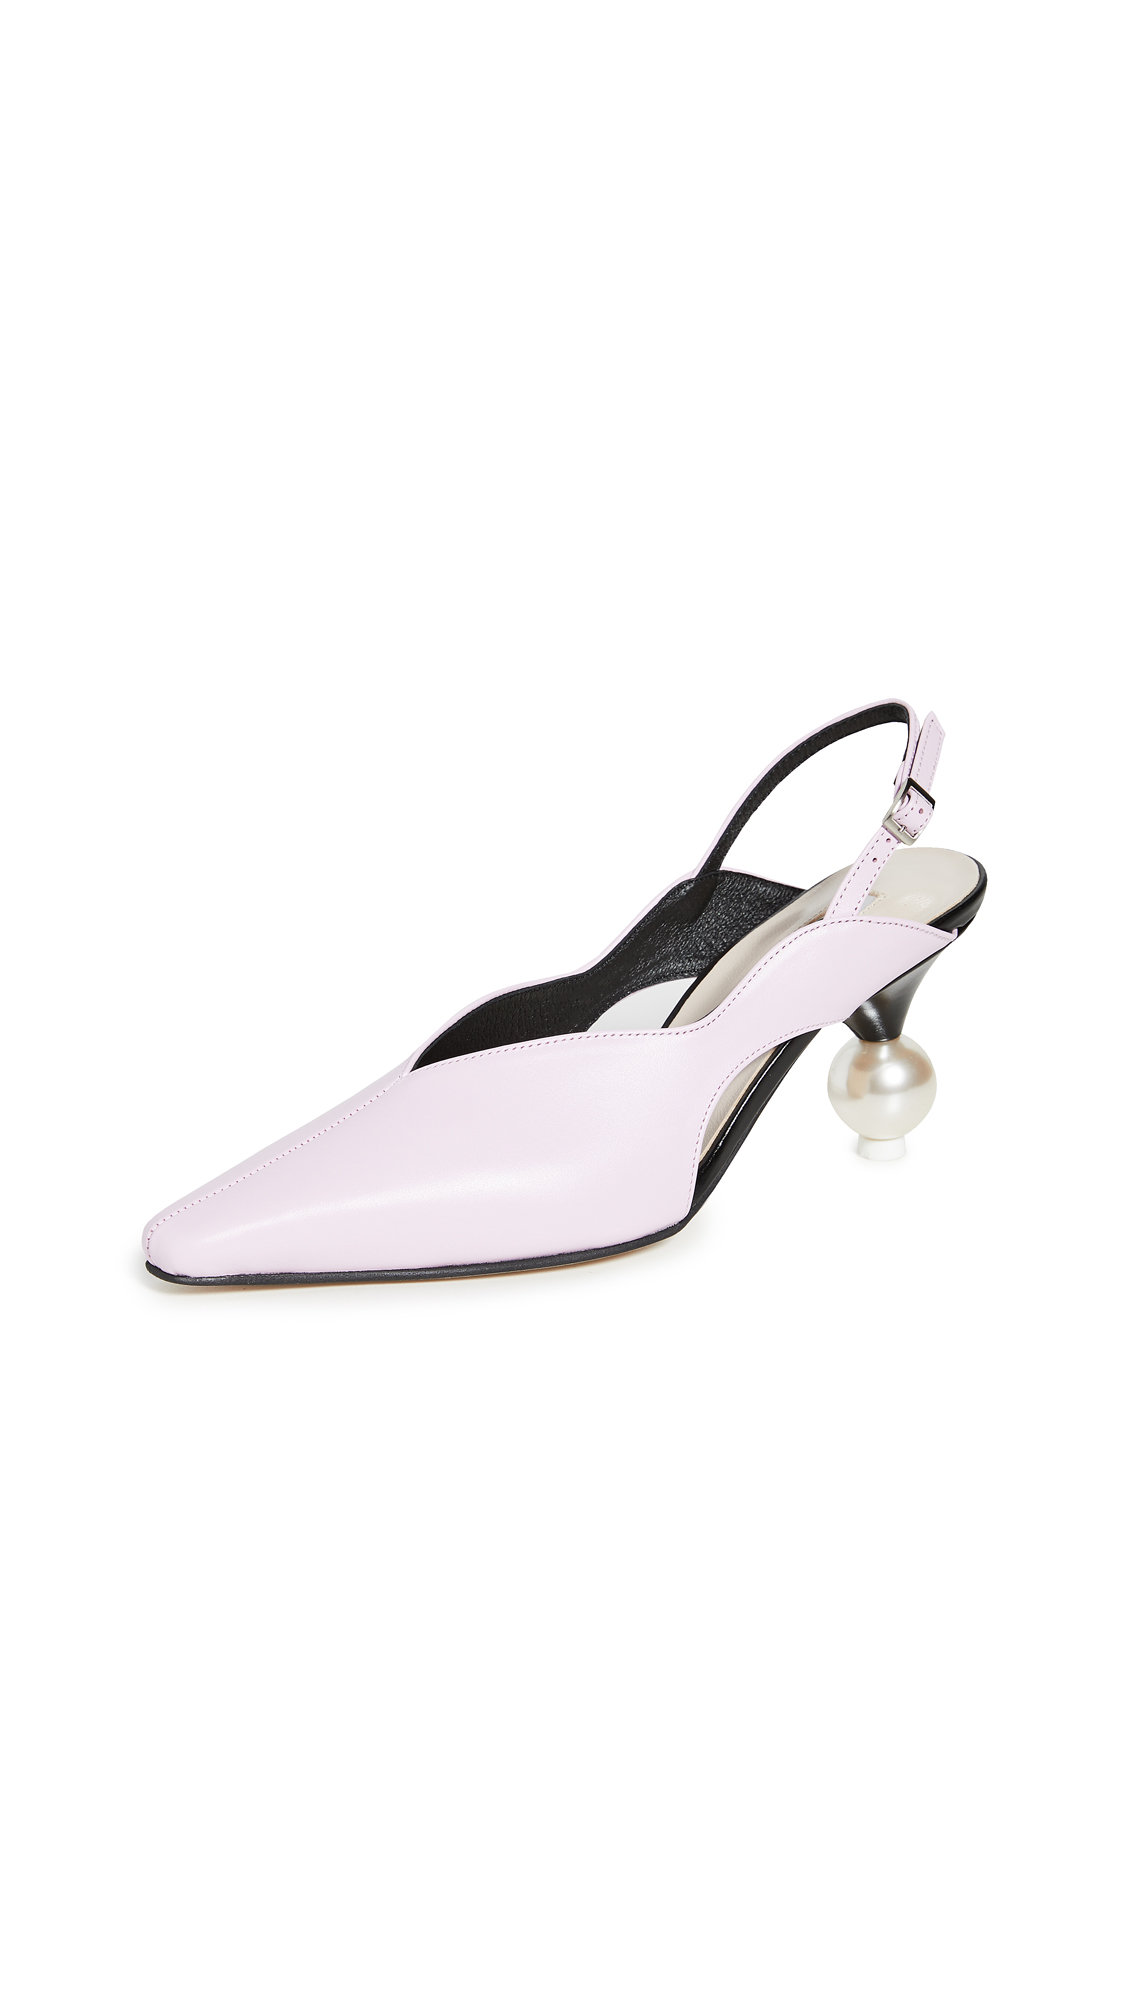 Yuul Yie Pumps DOREEN SLINGBACK PUMPS